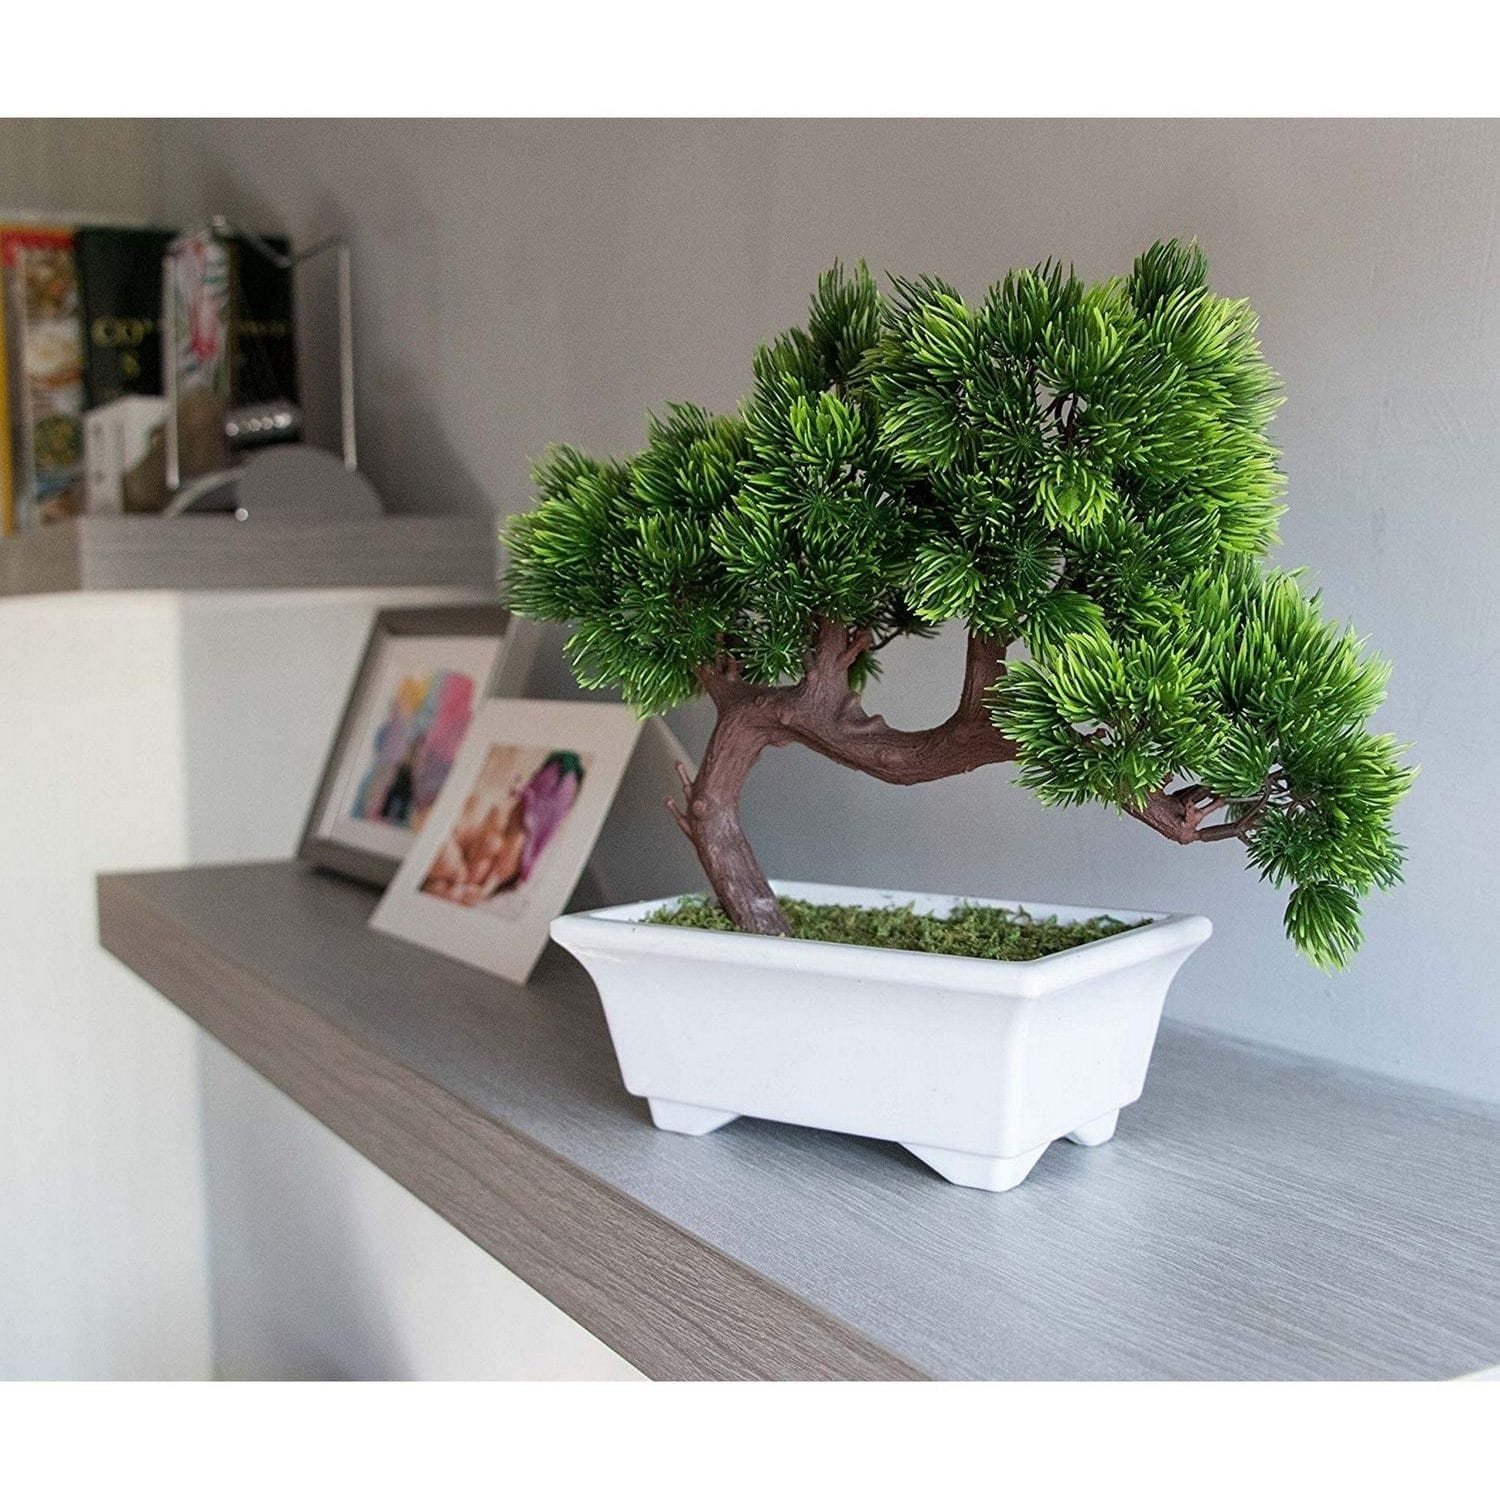 Artificial Bonsai Tree Fake Plant Decoration Potted Artificial House Plants Overstock 29743690